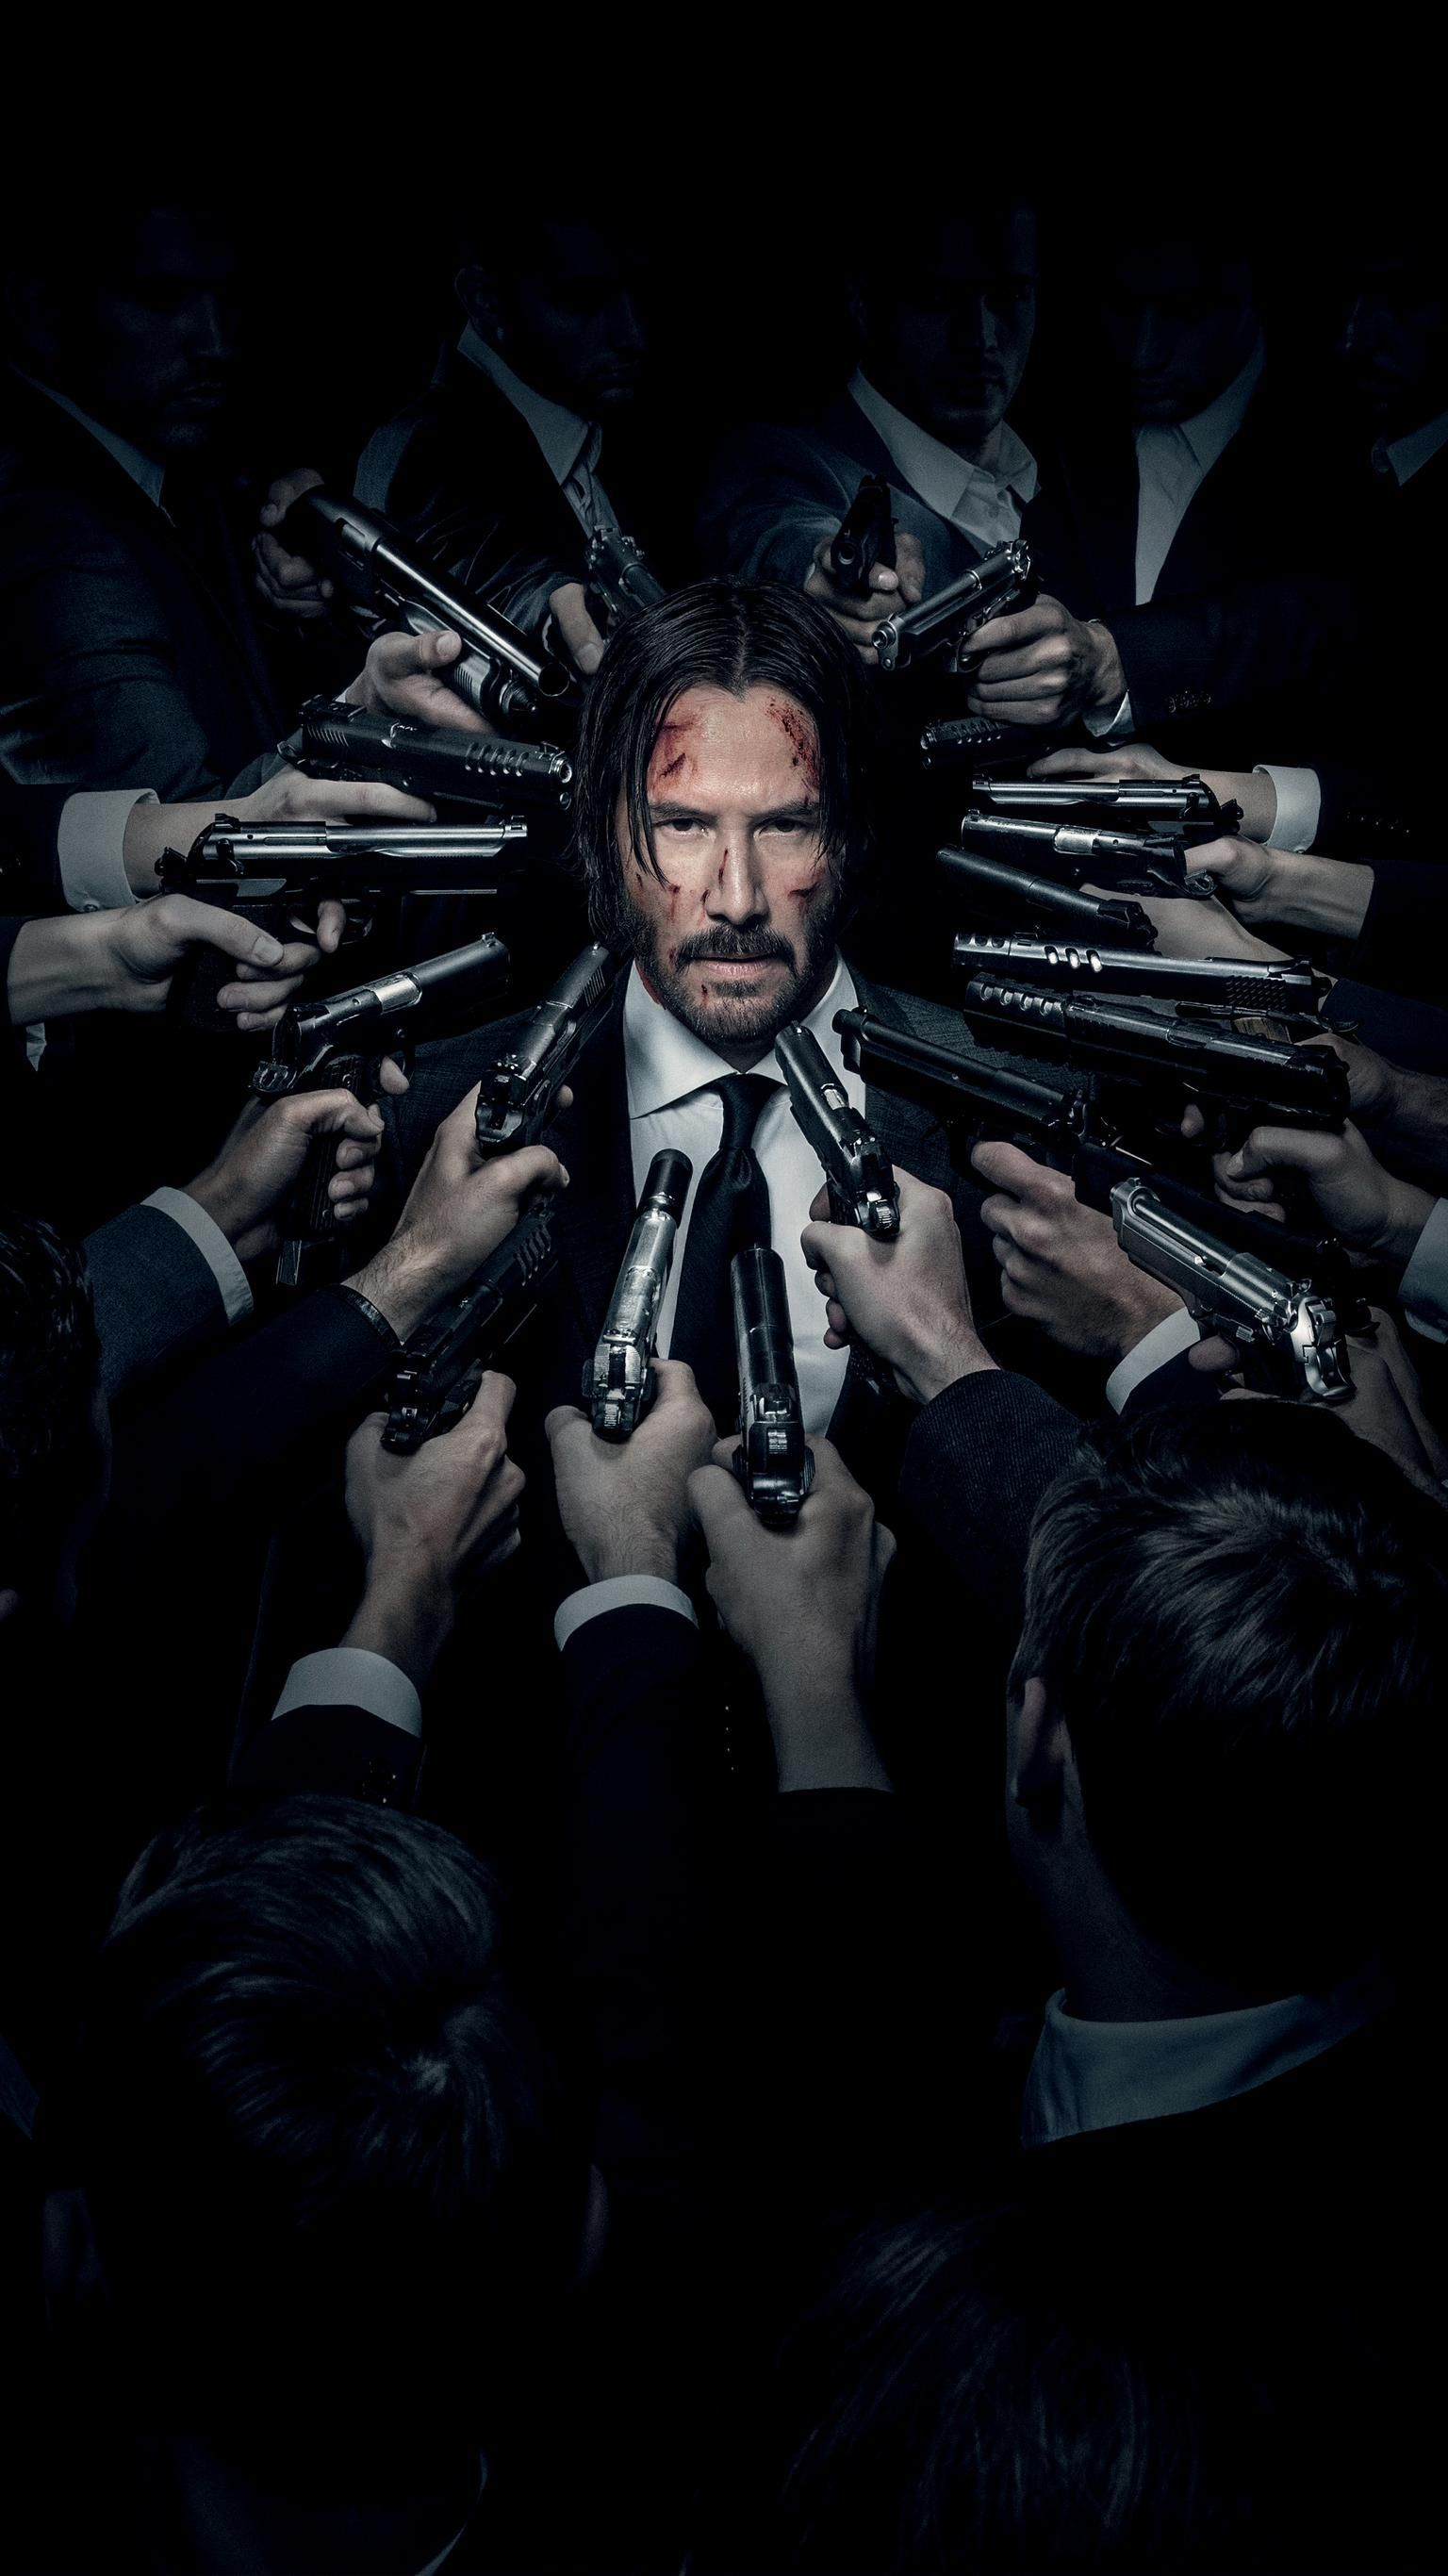 Wallpaper Iphone Apple Art John Wick Hd John Wick Movie Keanu Reeves John Wick